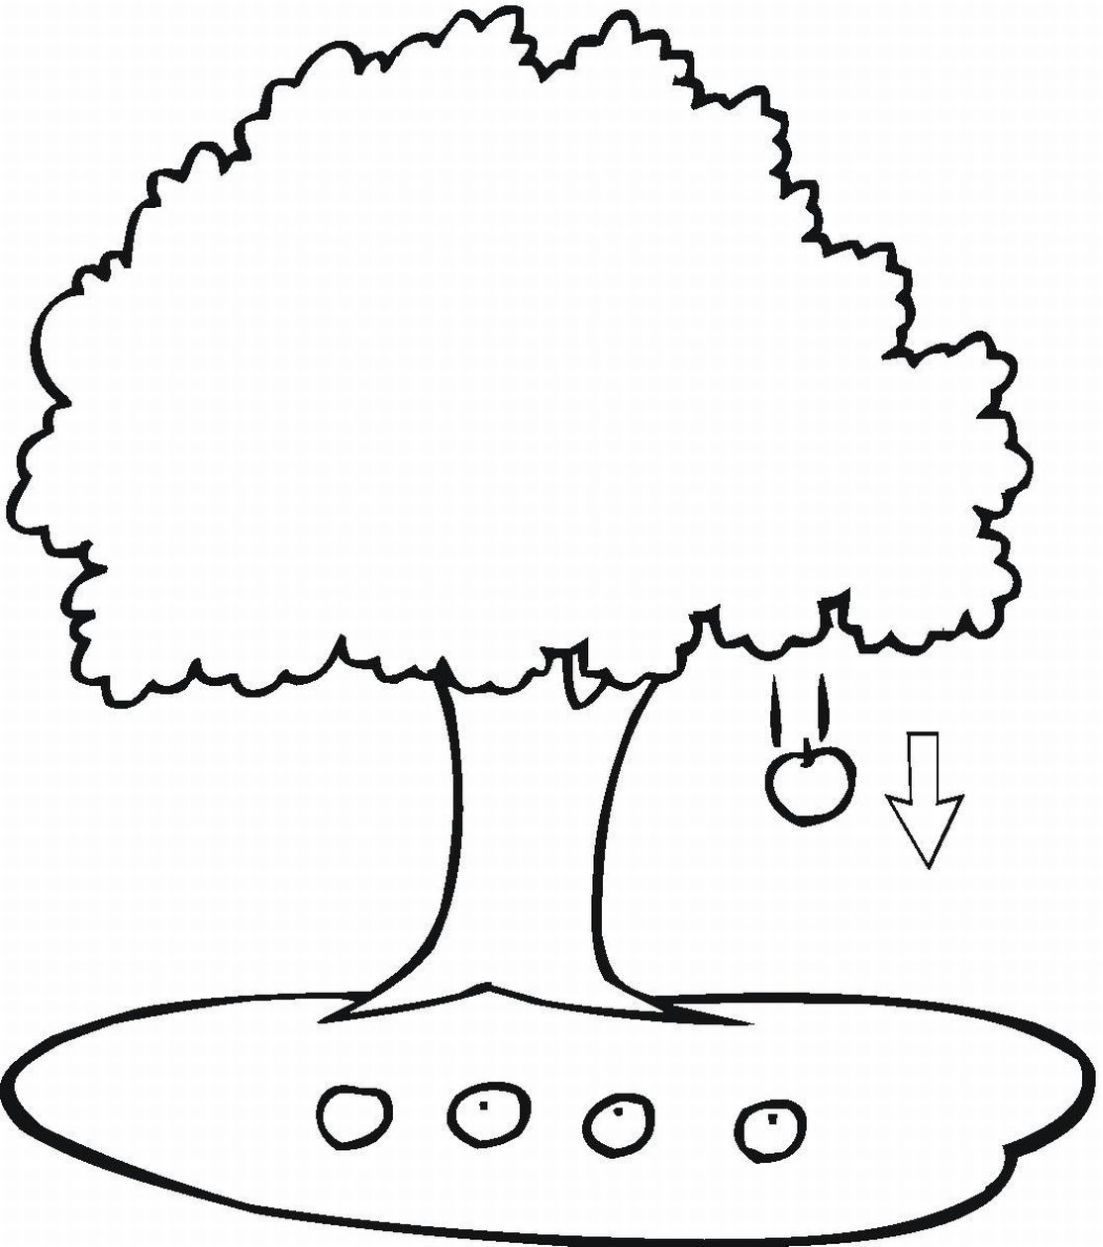 1103x1247 Appealing Coloring Page Tree Funycoloring Of Popular And Ideas